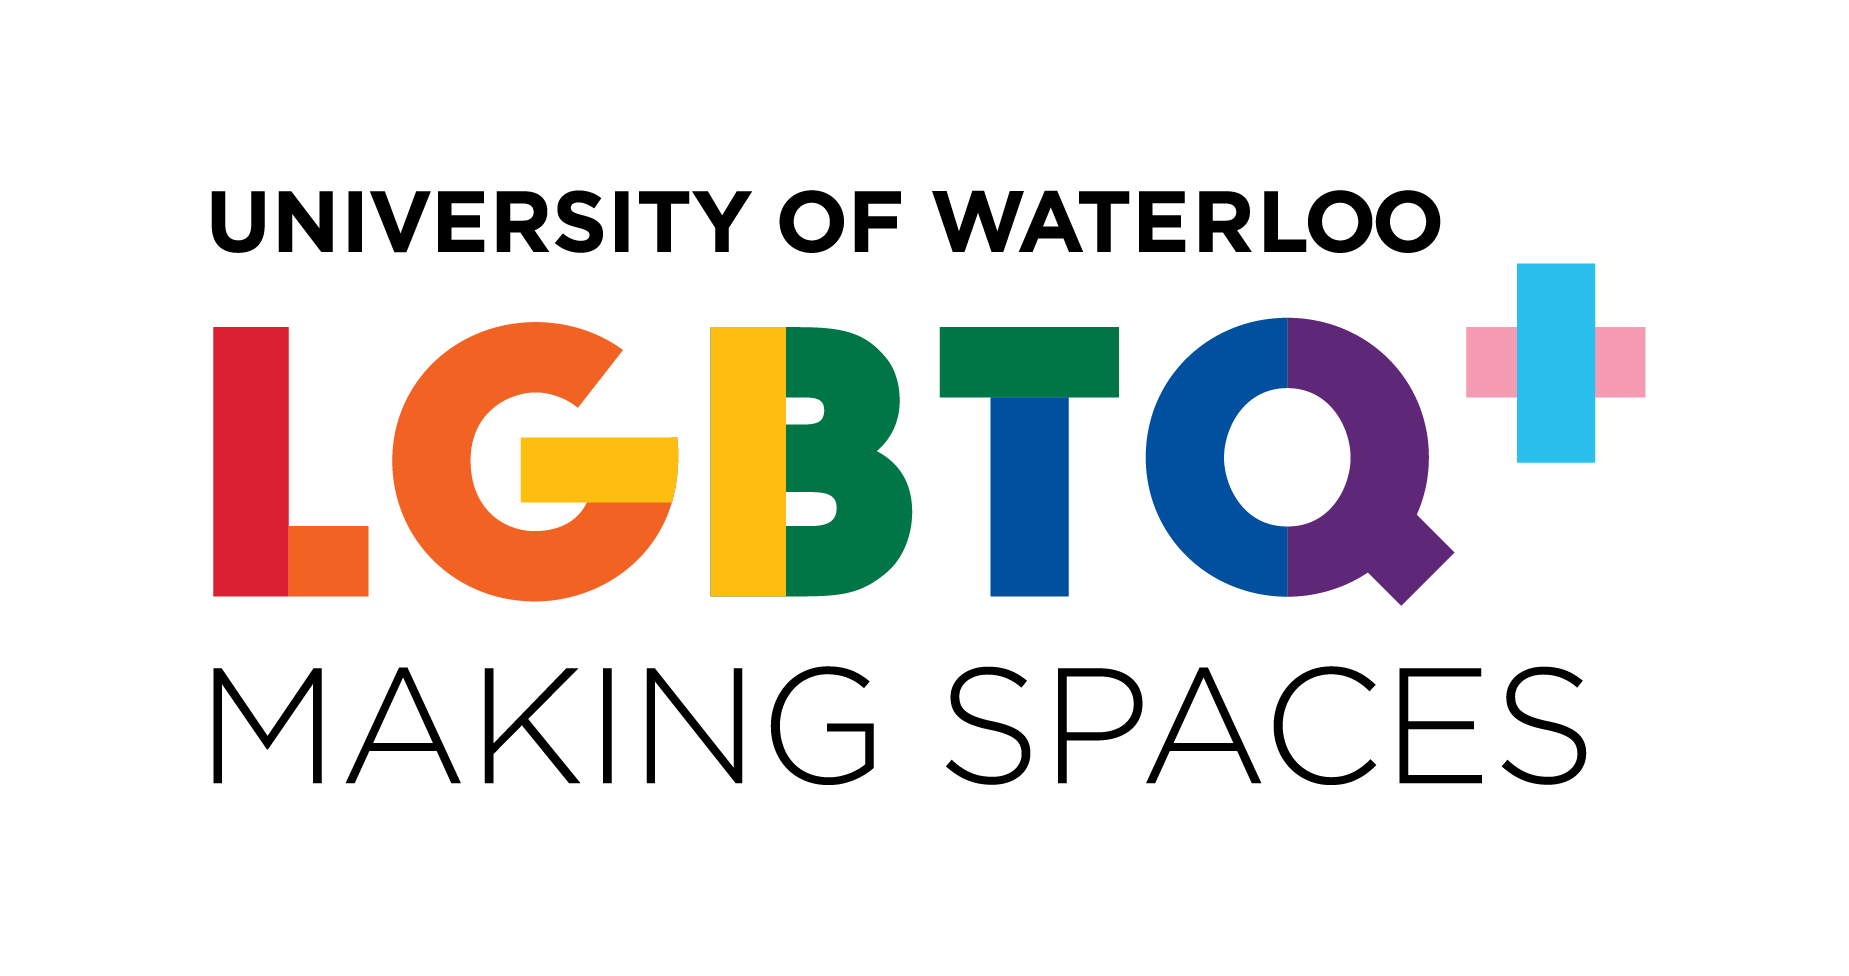 LGBTQ+ Making Spaces